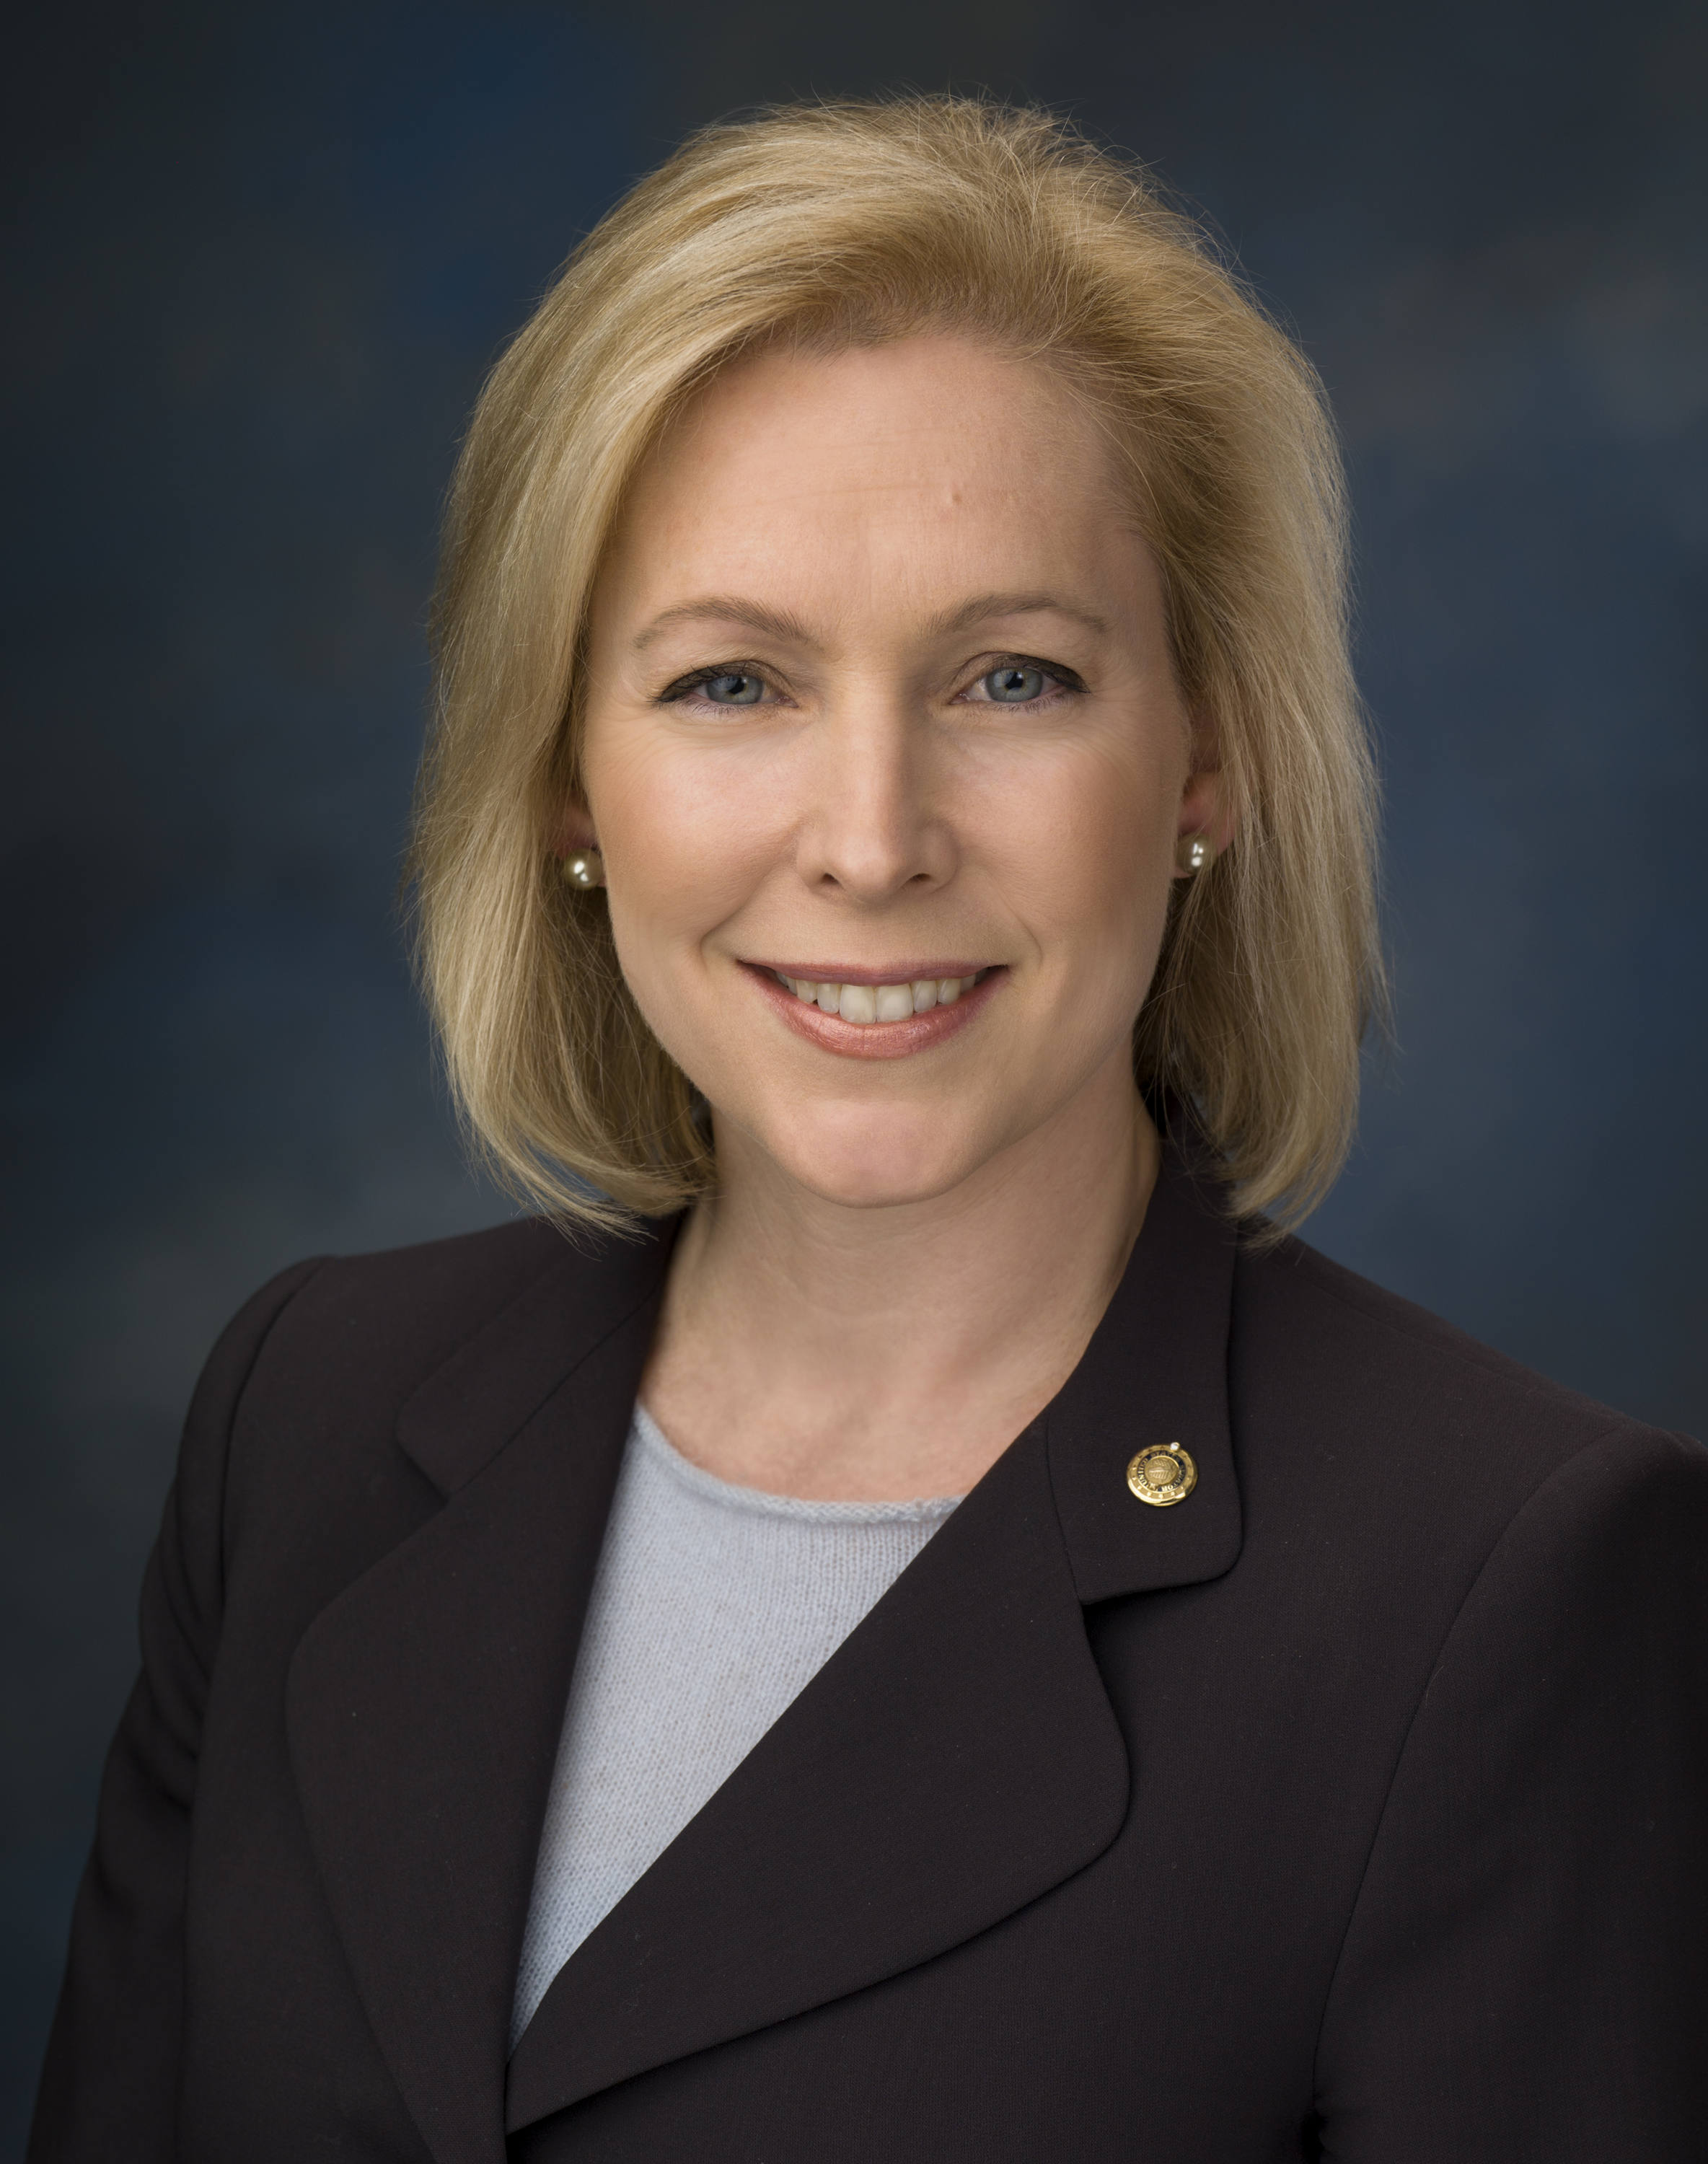 New York Sen. Kirsten Gillibrand — a fighter against sexual harassment — finds herself accused of fostering it. Photograph by Rebecca Hammel for the U.S. Senate Photographic Studio.